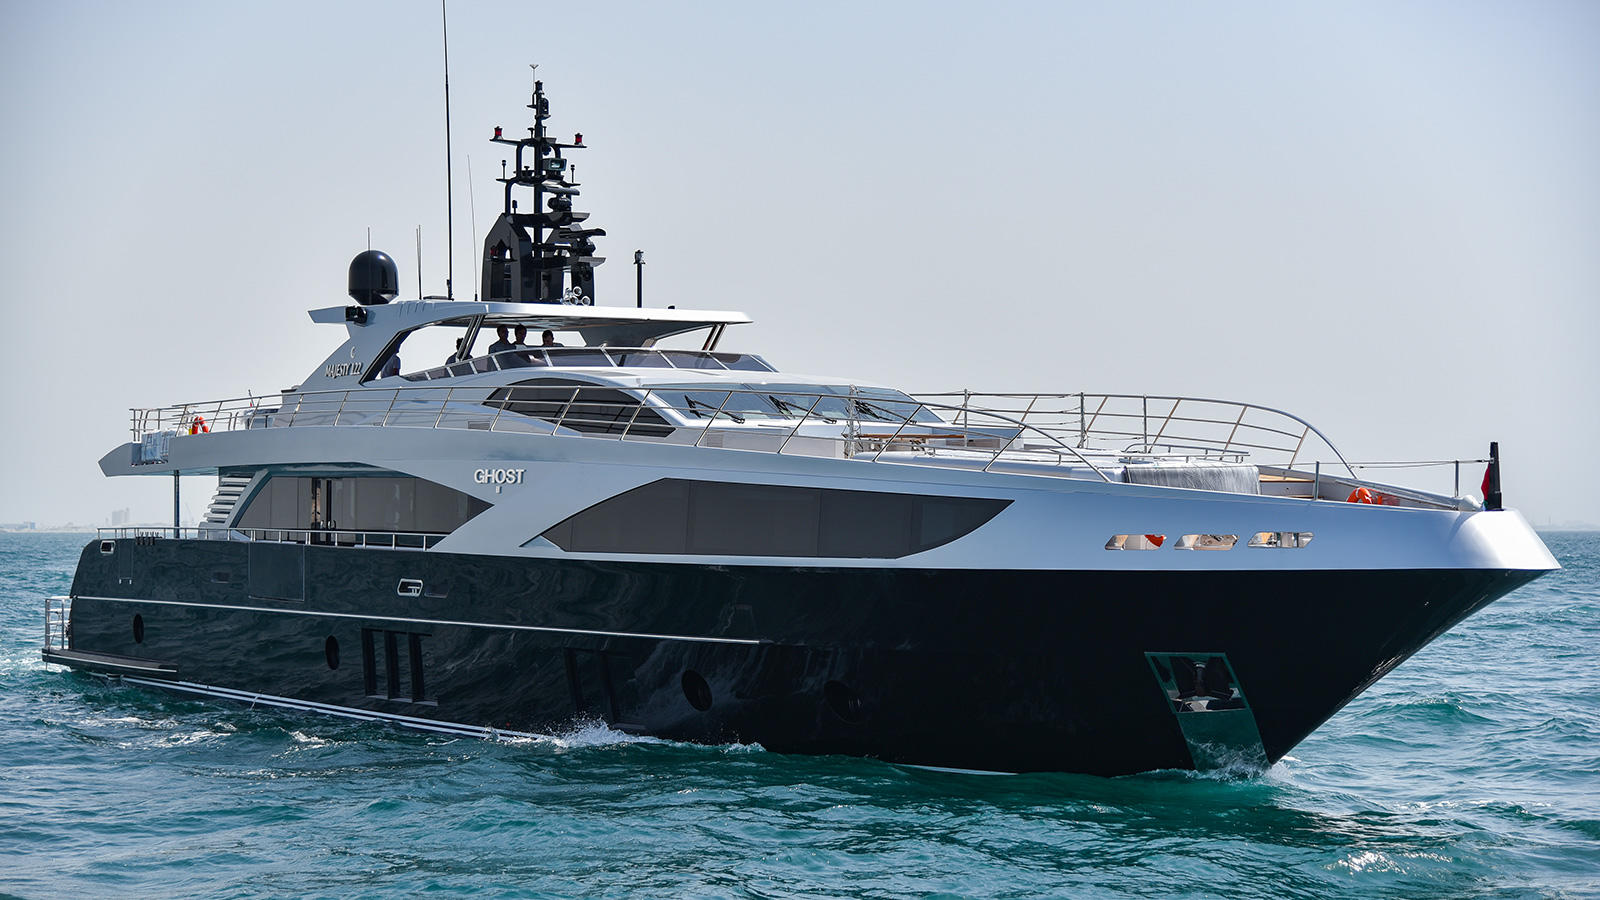 super-yacht-hire-sydney-on-ghost-ii-starboard